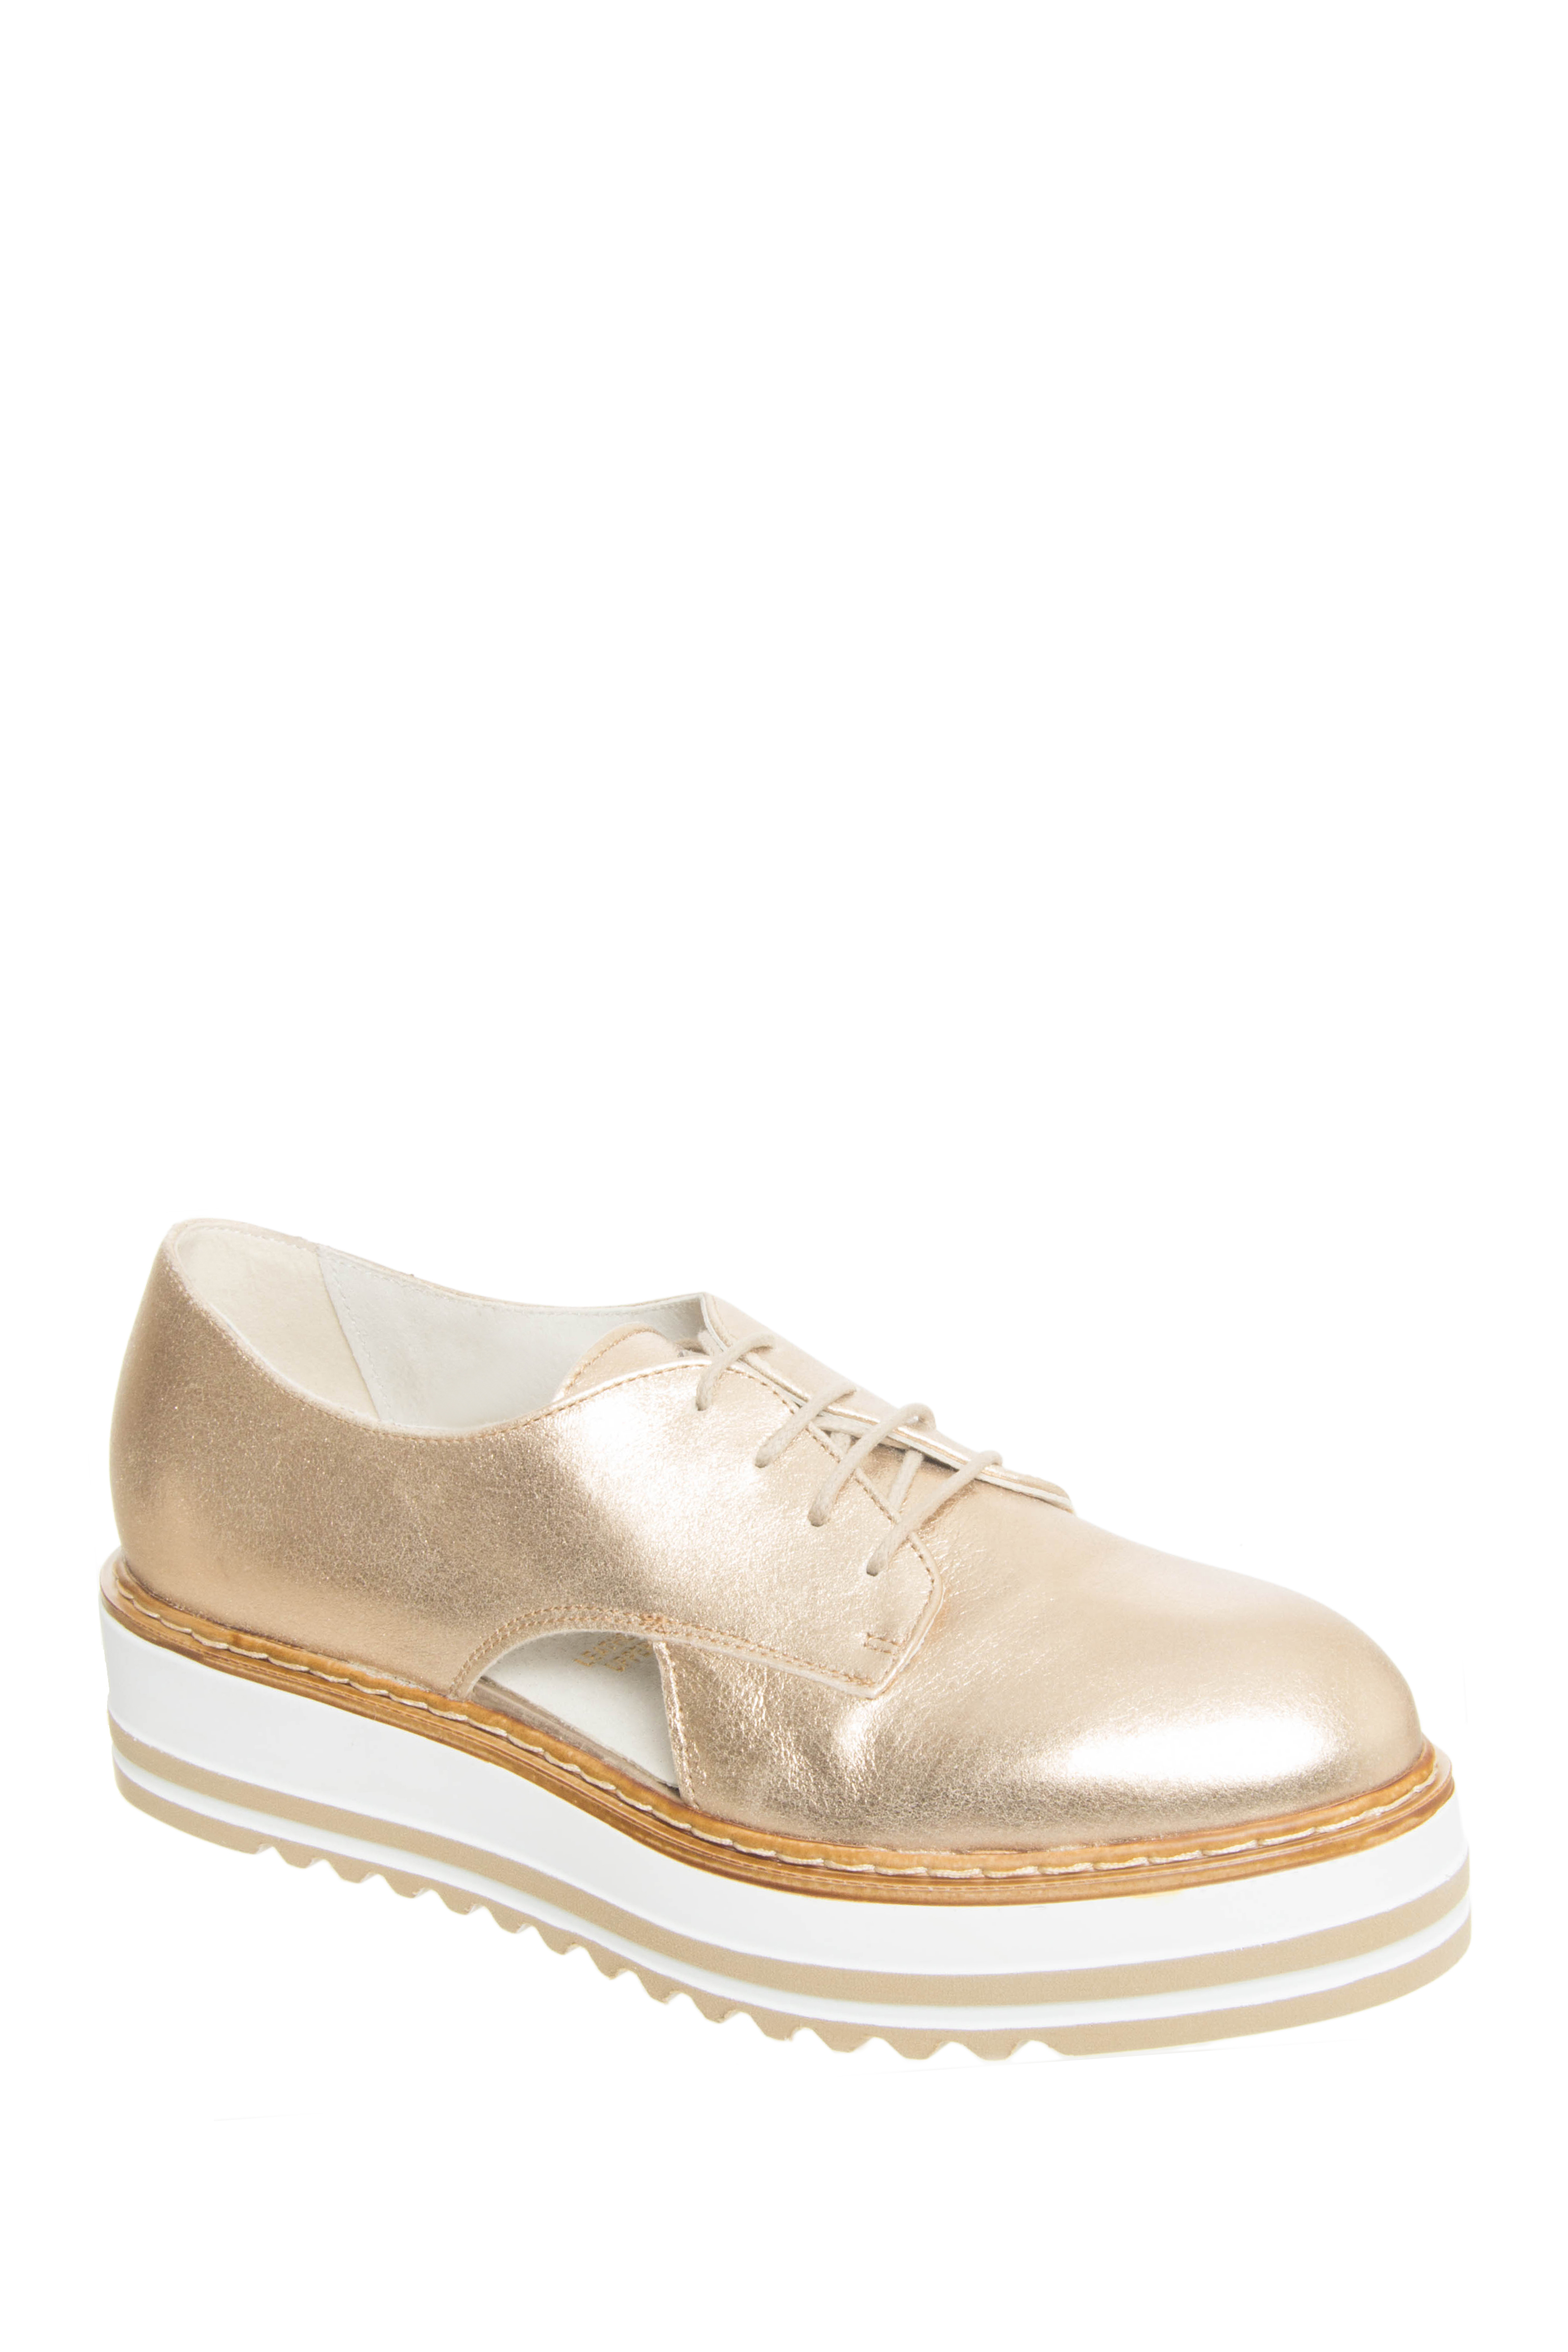 Summit by White Mountain Brody Double Stripe Platform Oxford - Gold / Metallic